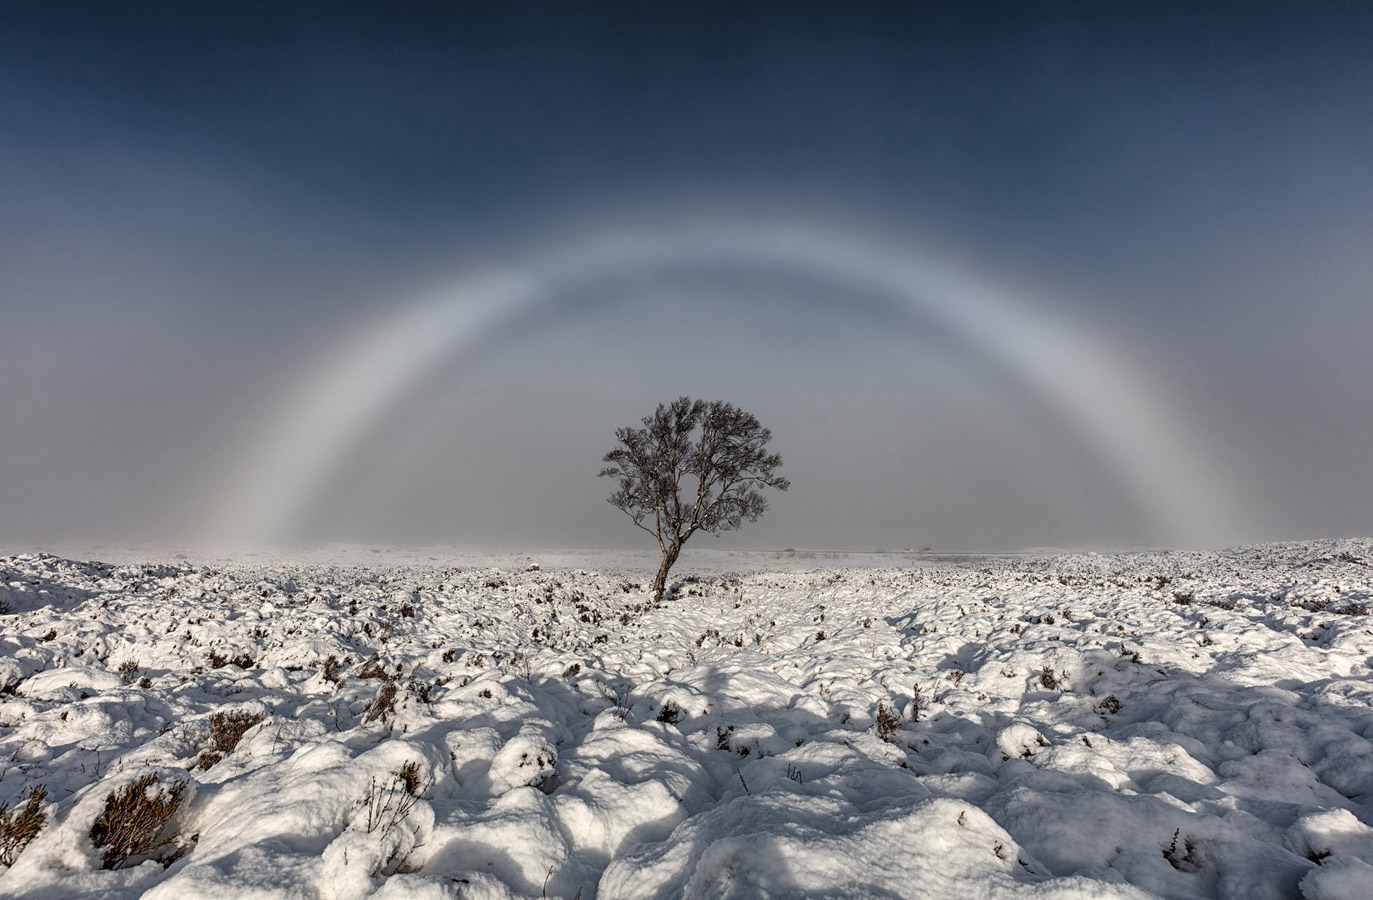 © Melvin Nicholson, Weather Photographer of the Year